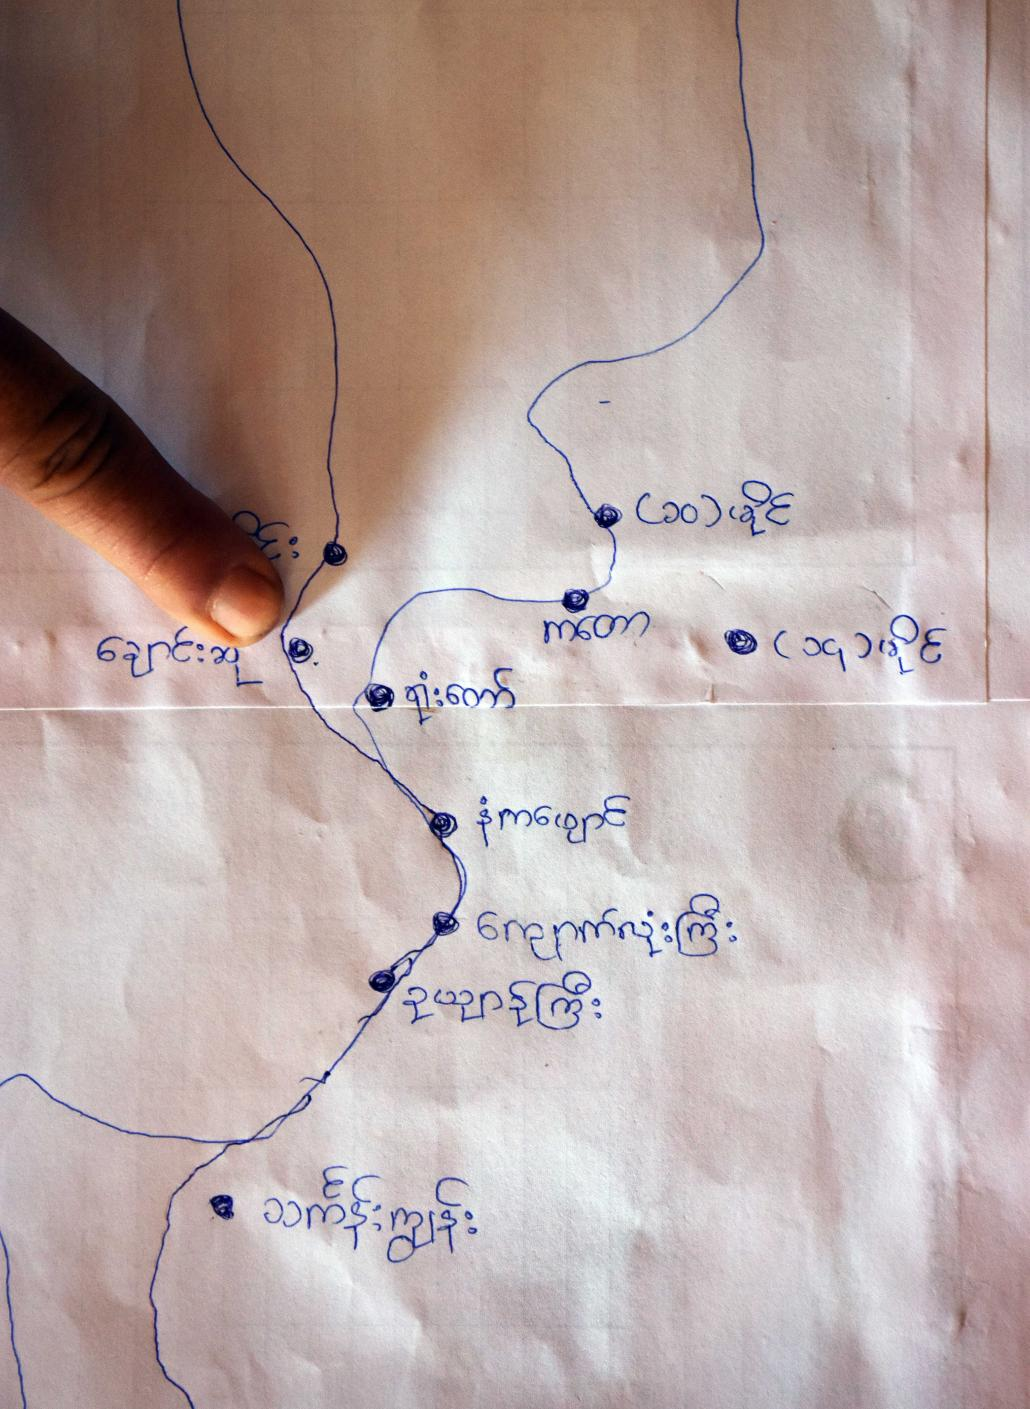 A local resident points to a home-made map showing 10 villages that could be affected if a national park is created along the Lenya River in Tanintharyi Region. (Steve Tickner | Frontier)